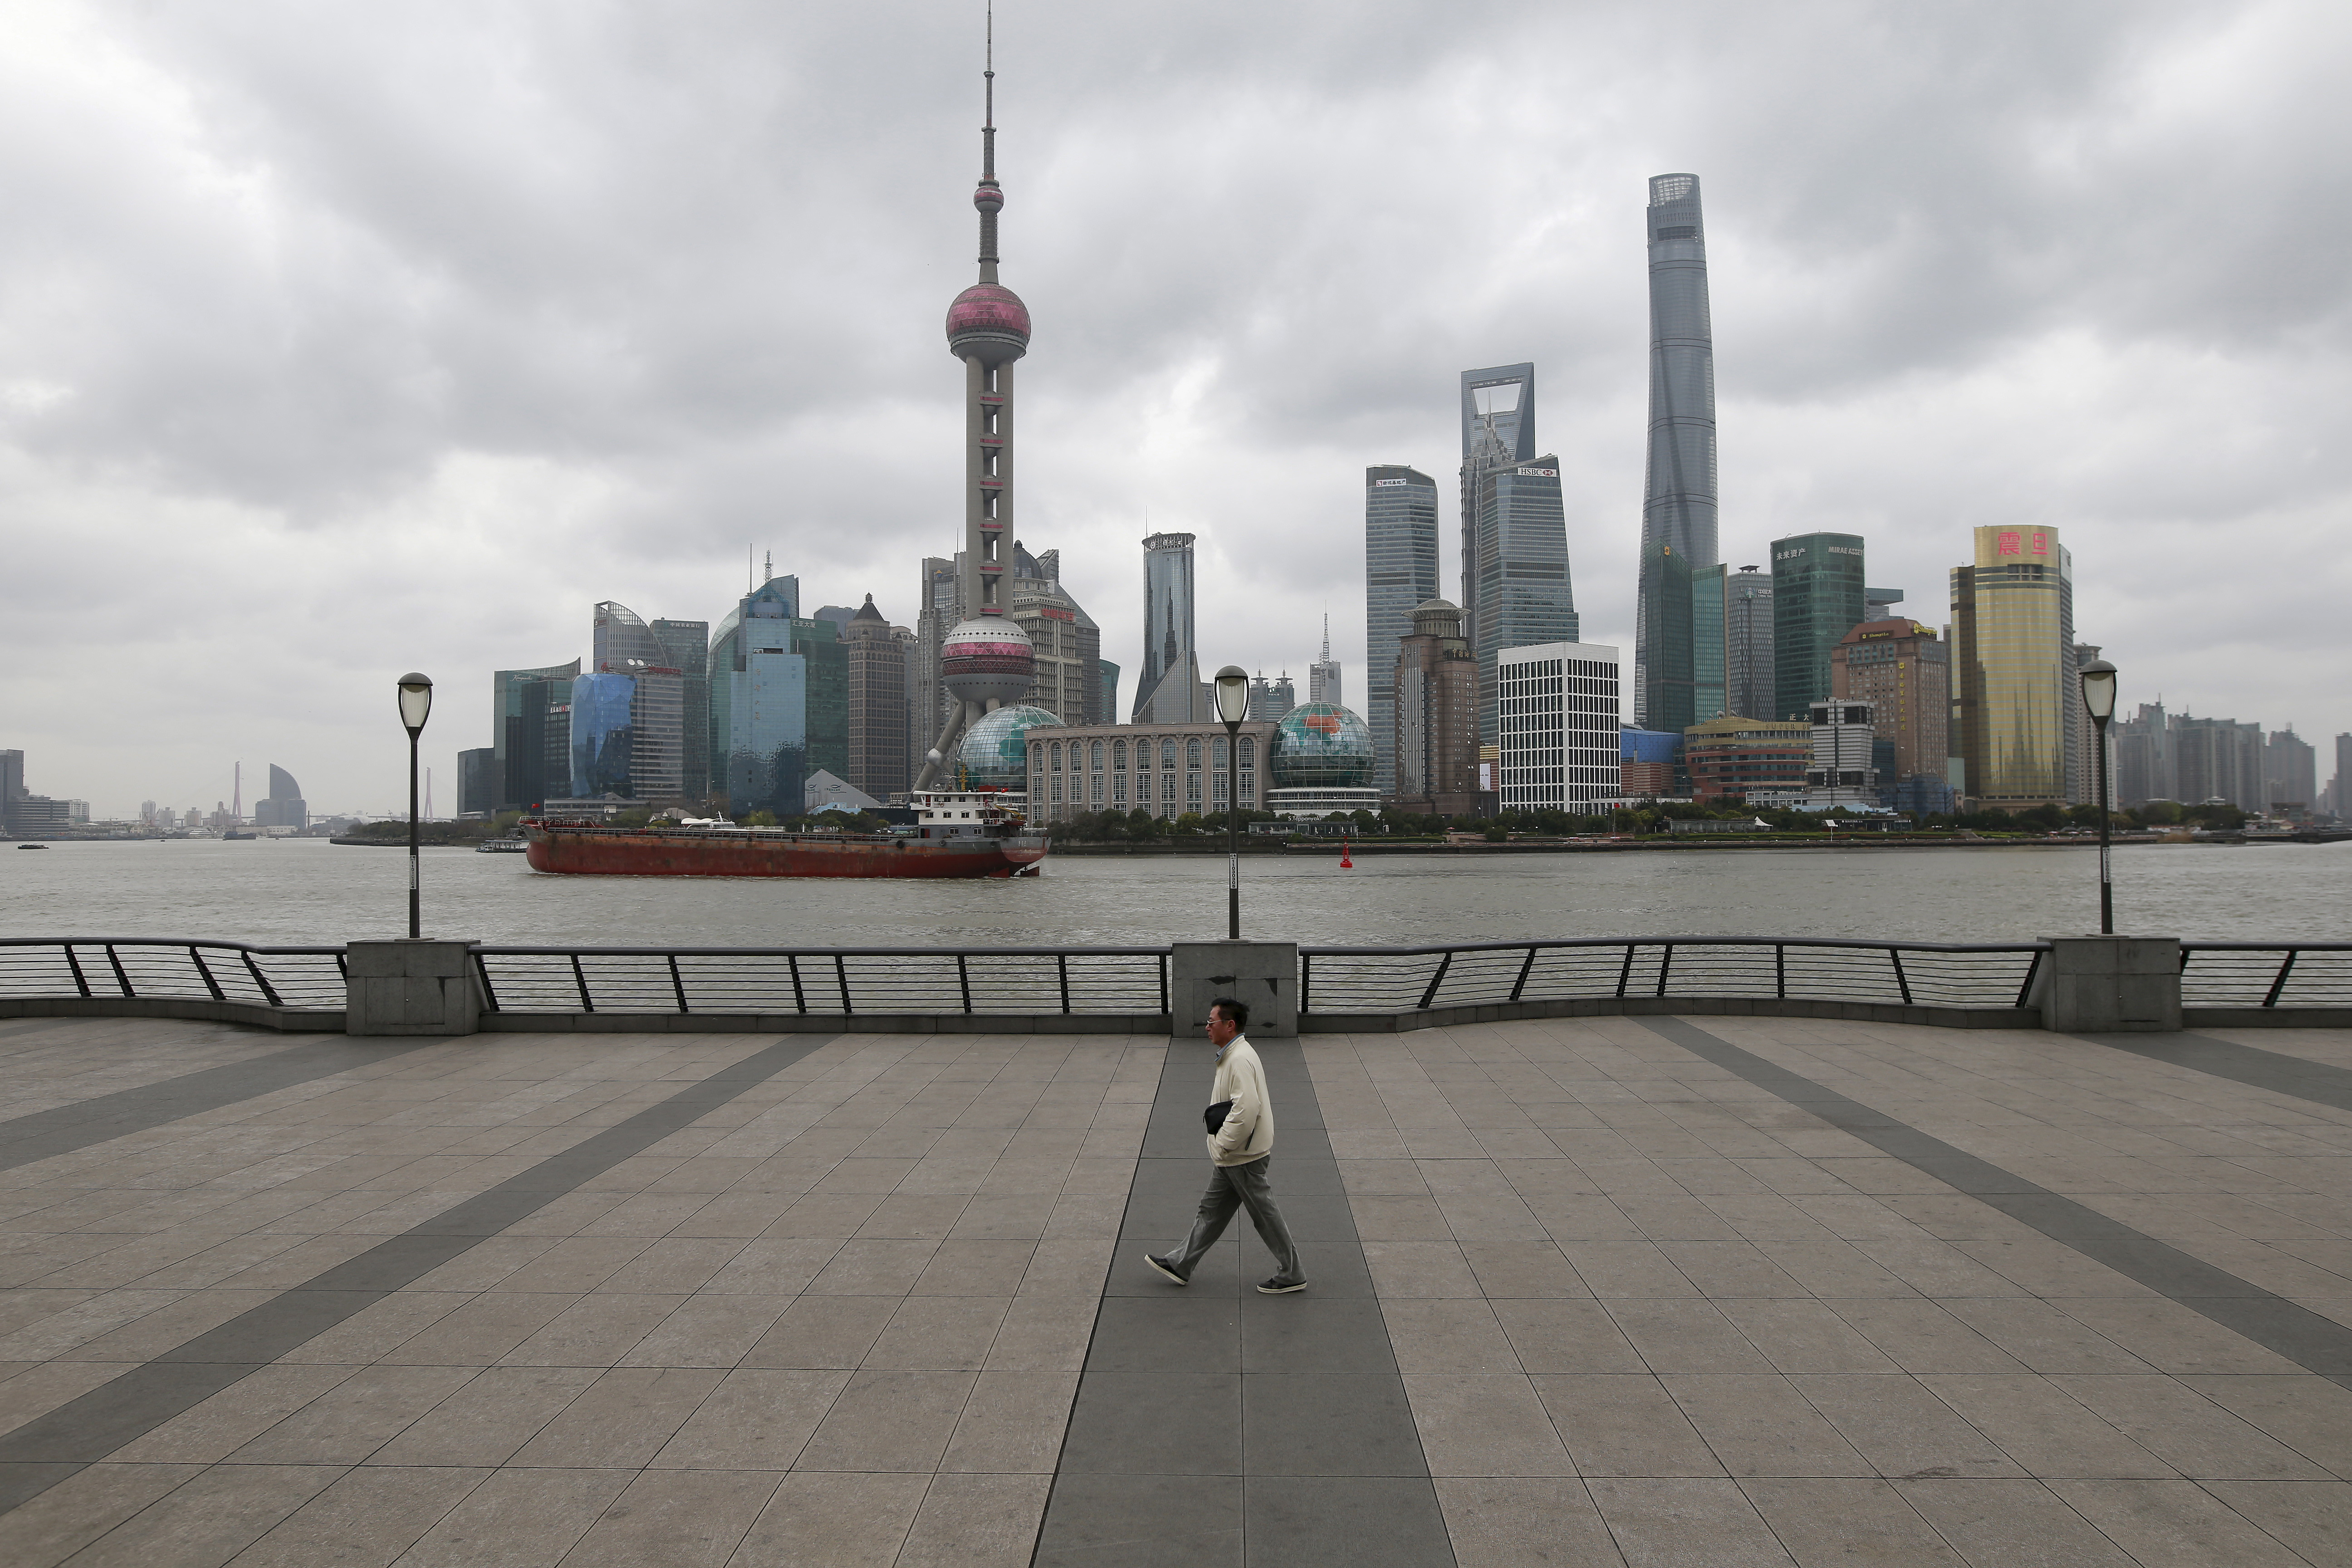 China's GDP Growth Rate Next Decade Won't Be Higher Than 5 Percent: Economist